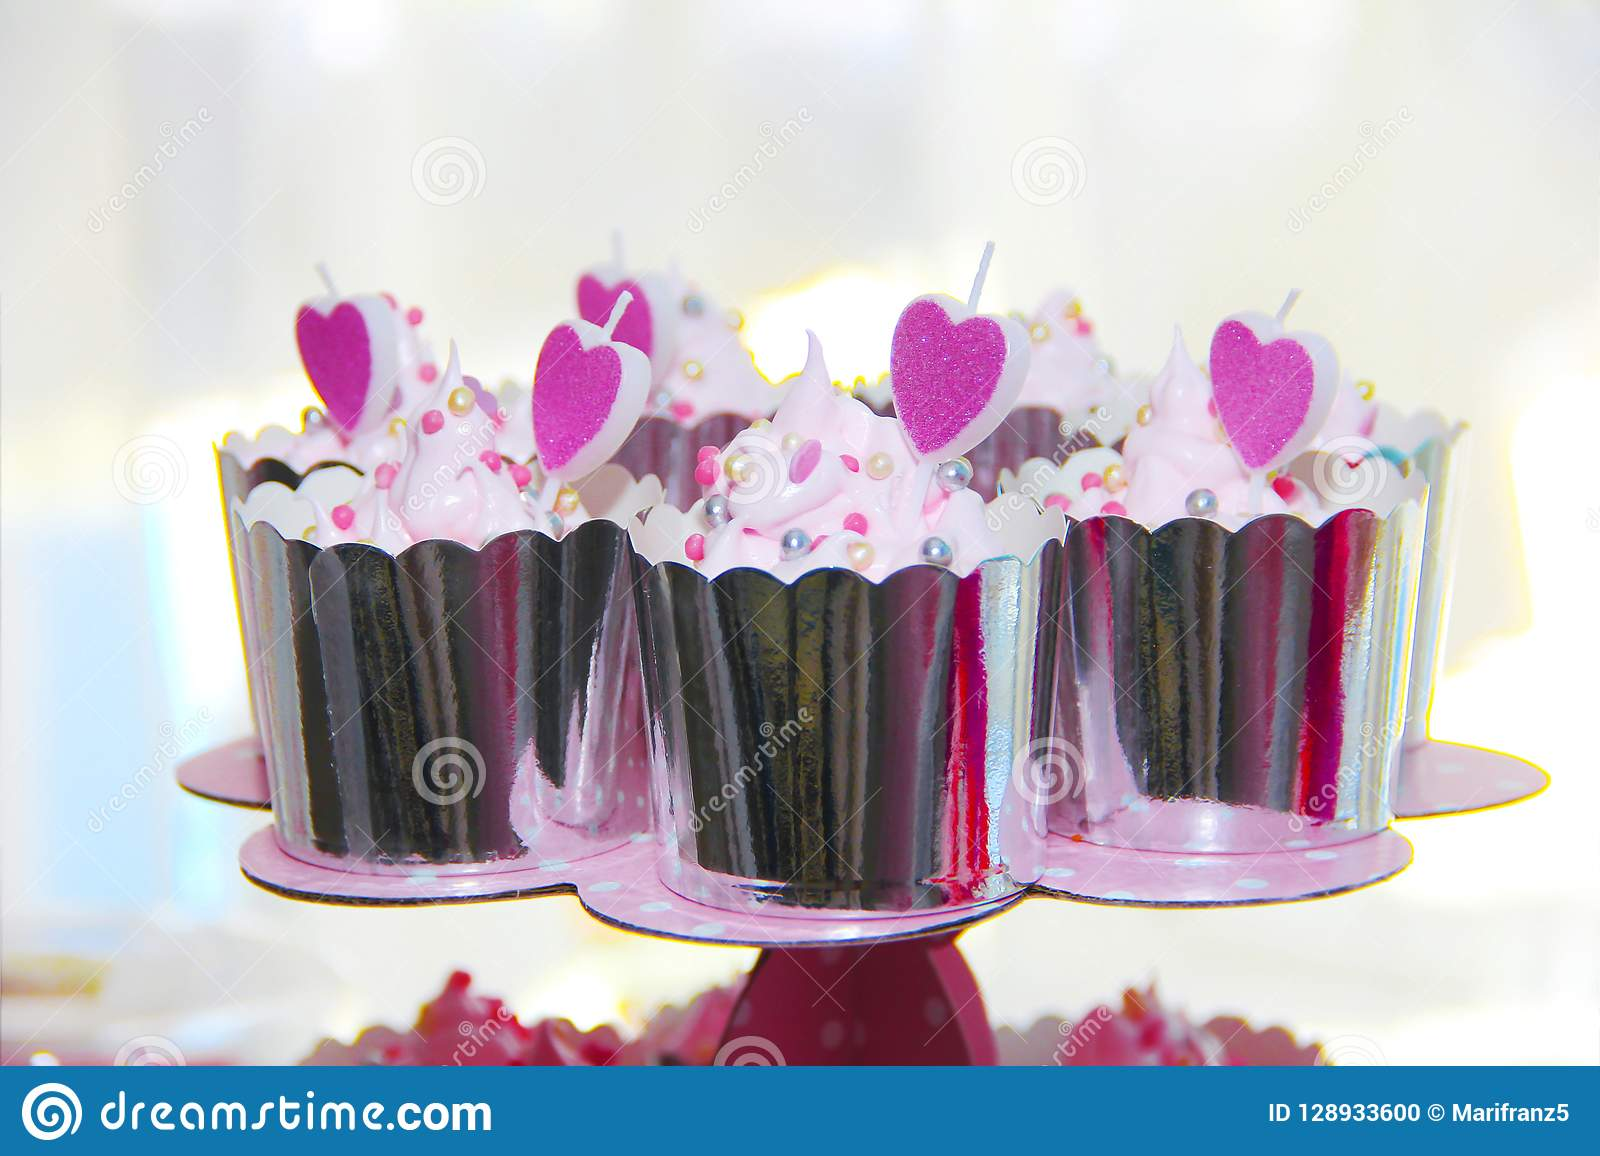 festive cupcakes in a shiny package with decoration in the form of cream and pink hearts